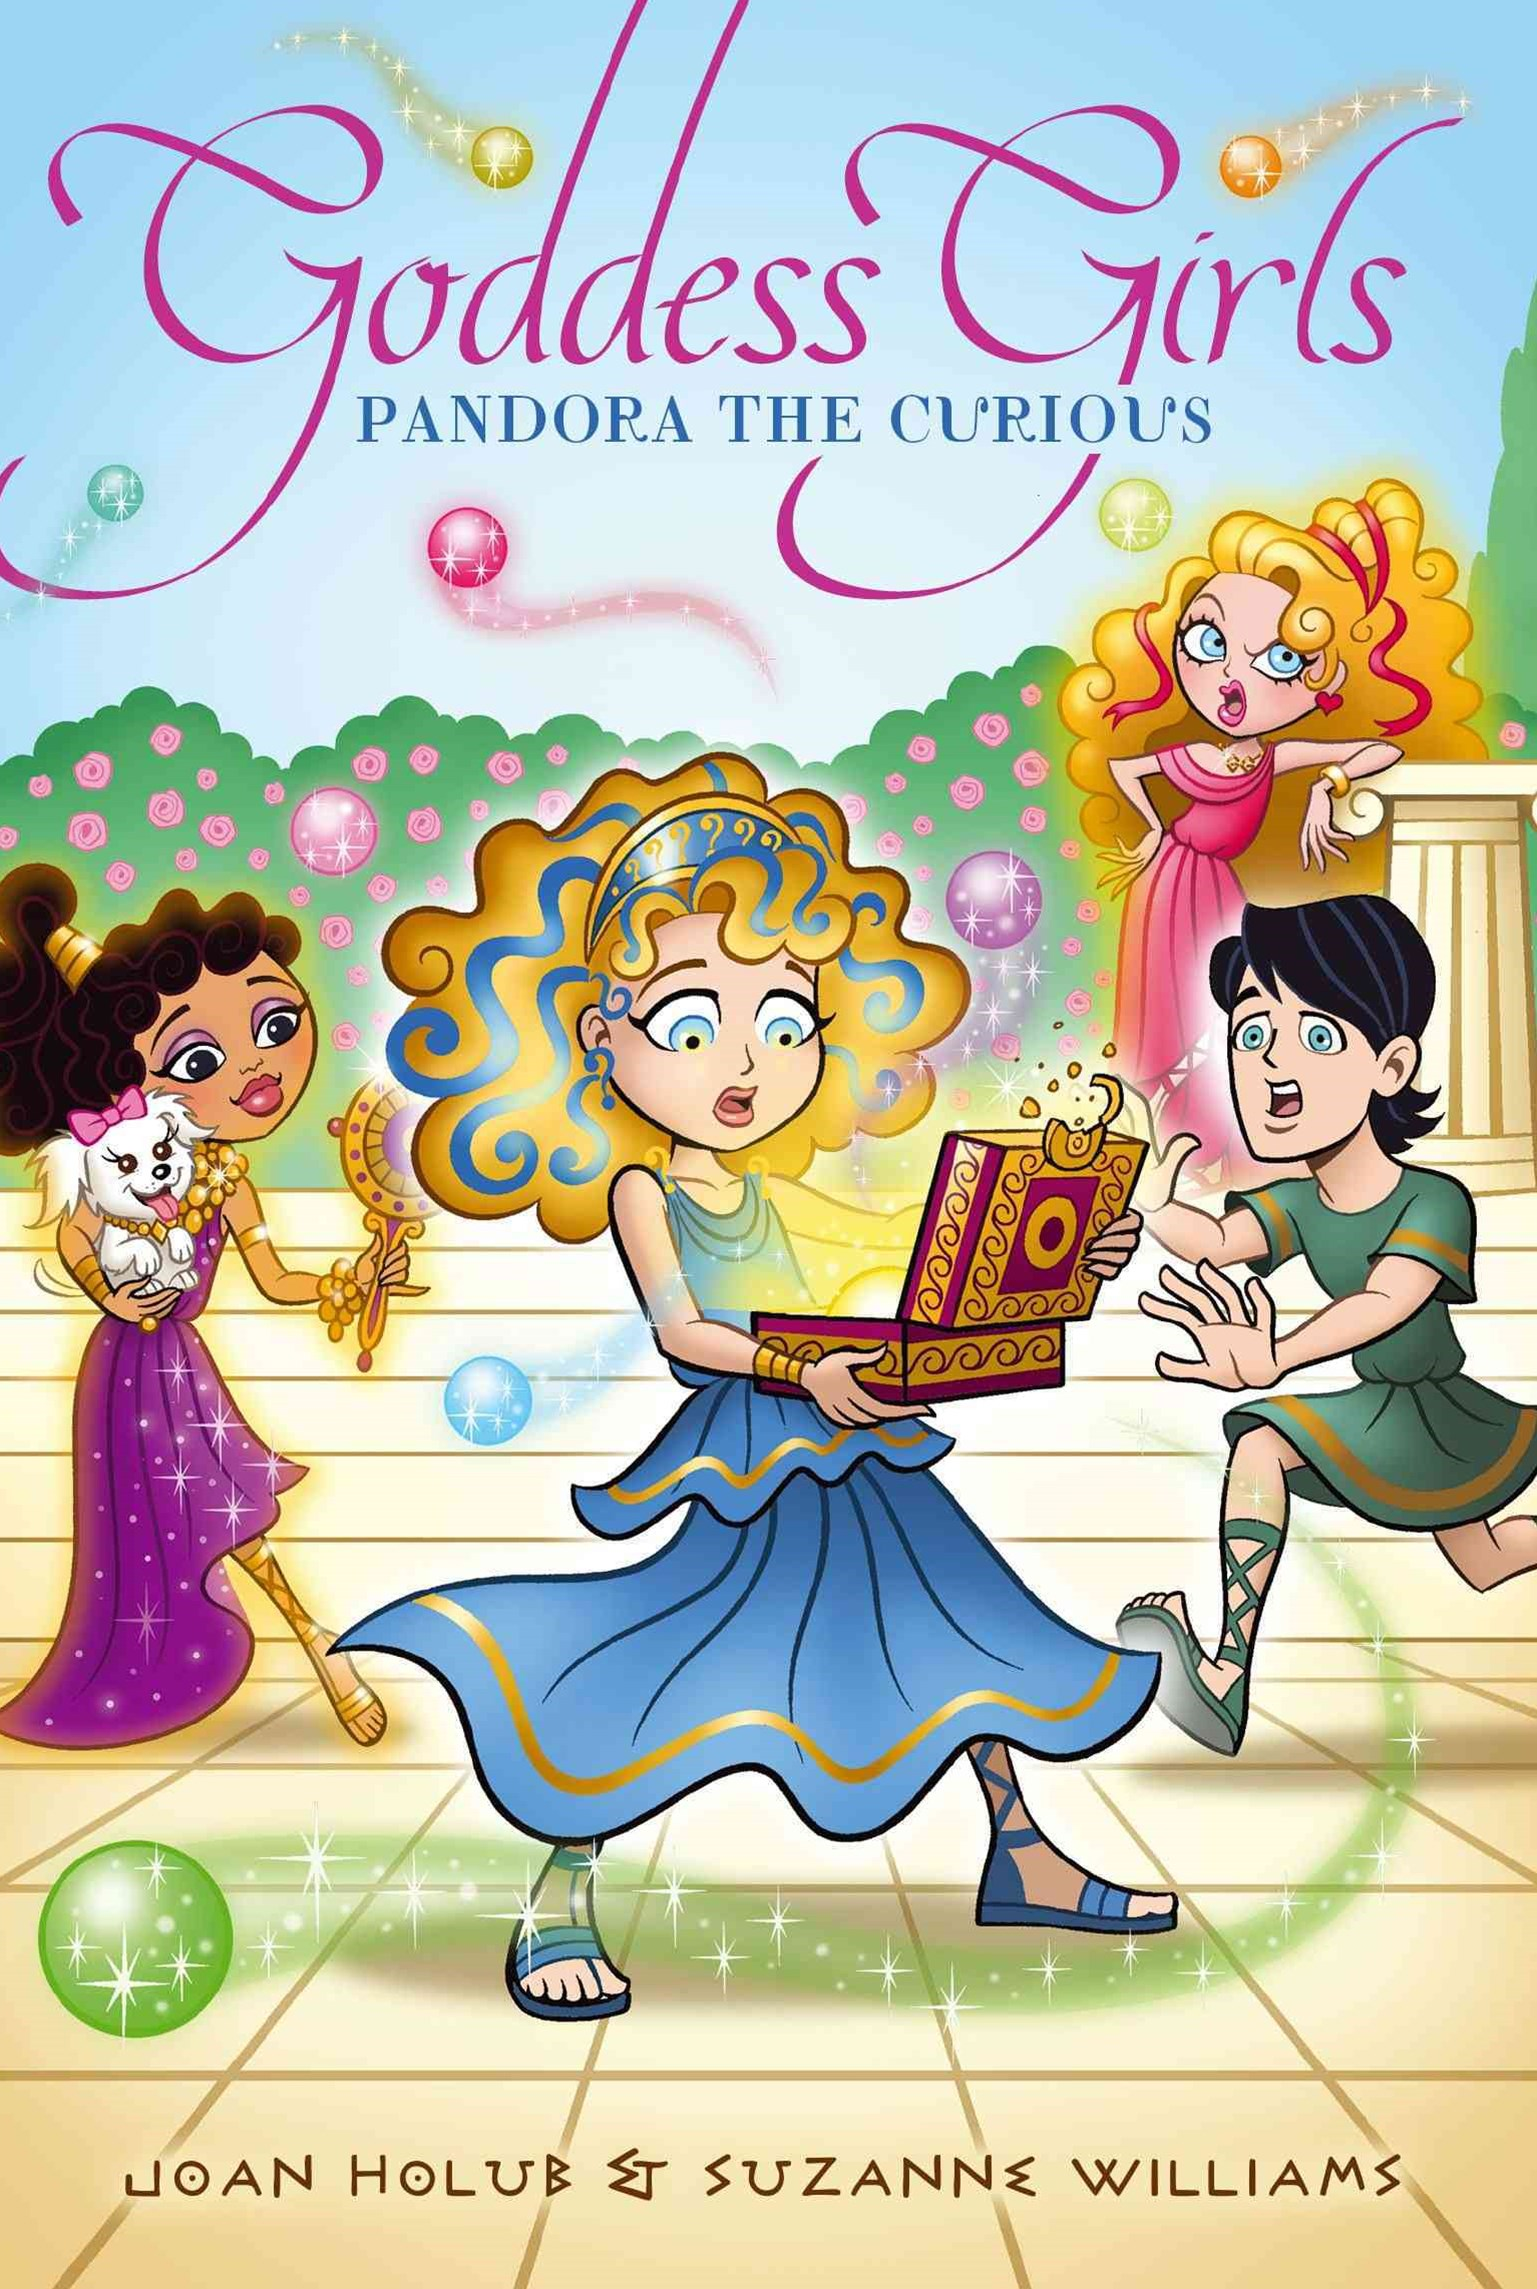 Goddess Girls #9: Pandora the Curious